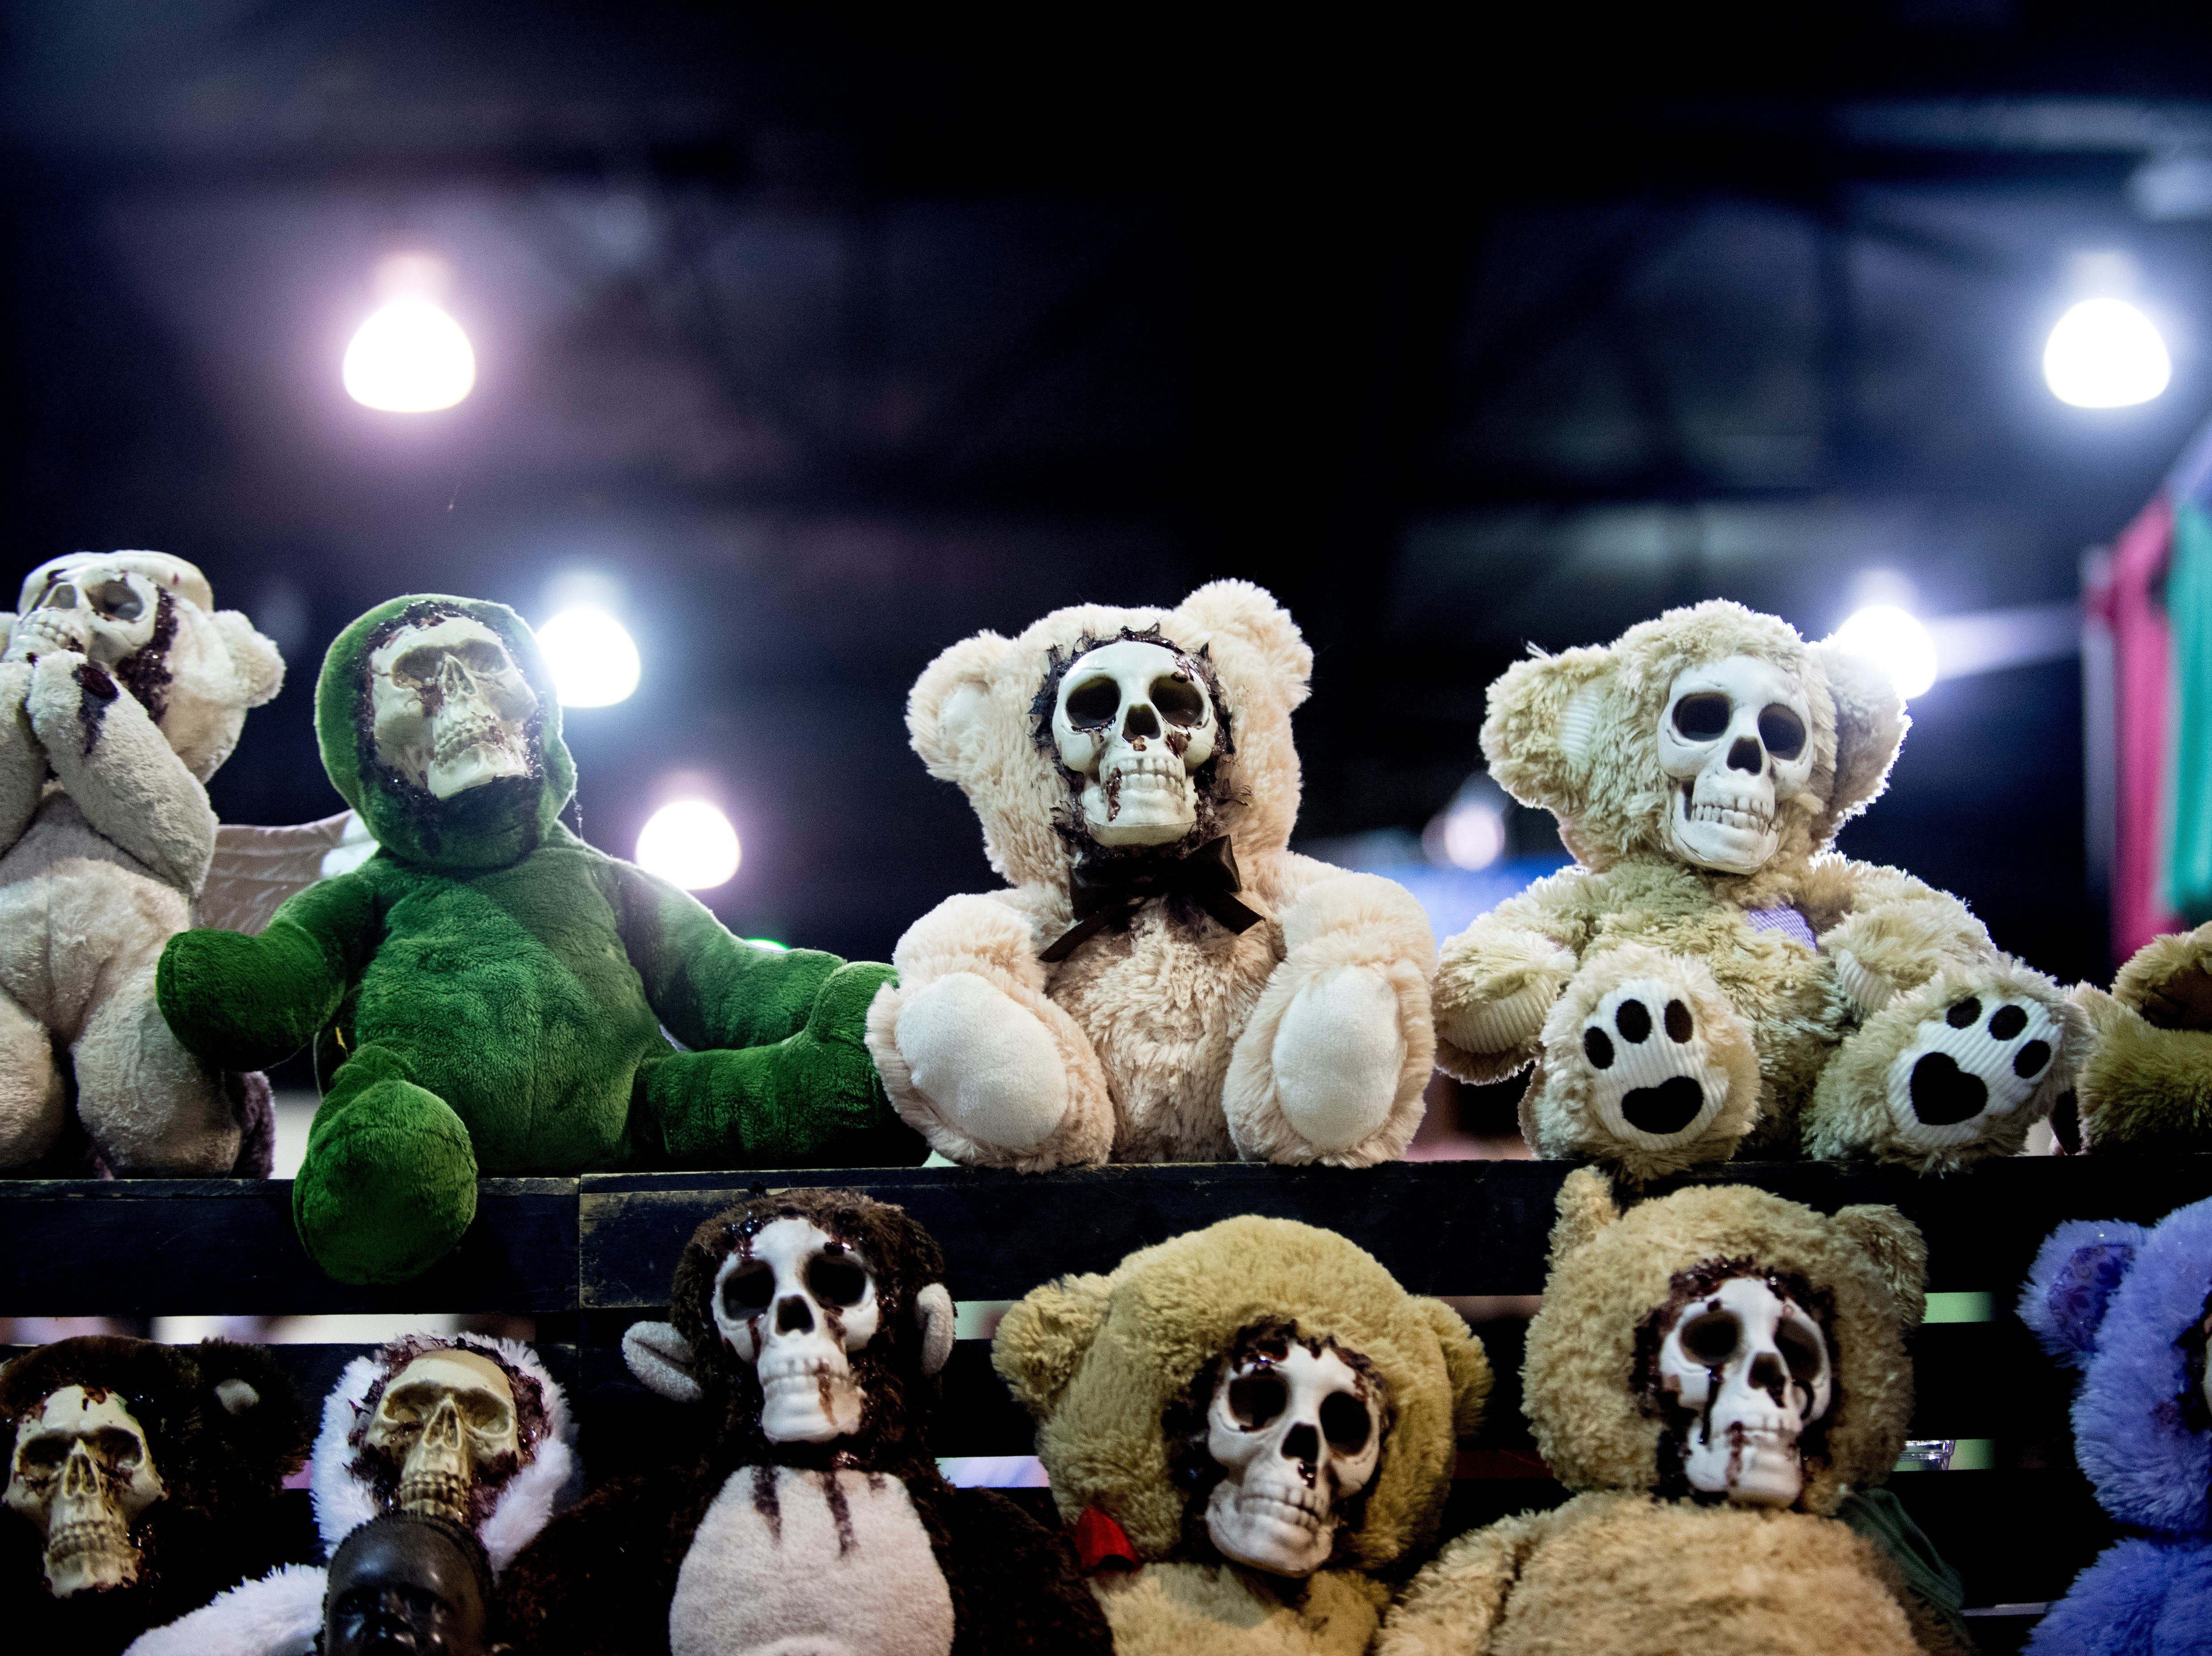 Not too cuddly looking stuffed teddy bears by Creature Seeker Studios are seen for sale during the annual Knoxville CreepyCon at the World's Fair Exhibition Hall in Knoxville, Tennessee on Saturday, August 25, 2018. The event featured performers, a zombie beauty contest, workshops and a wide selection of vendors.